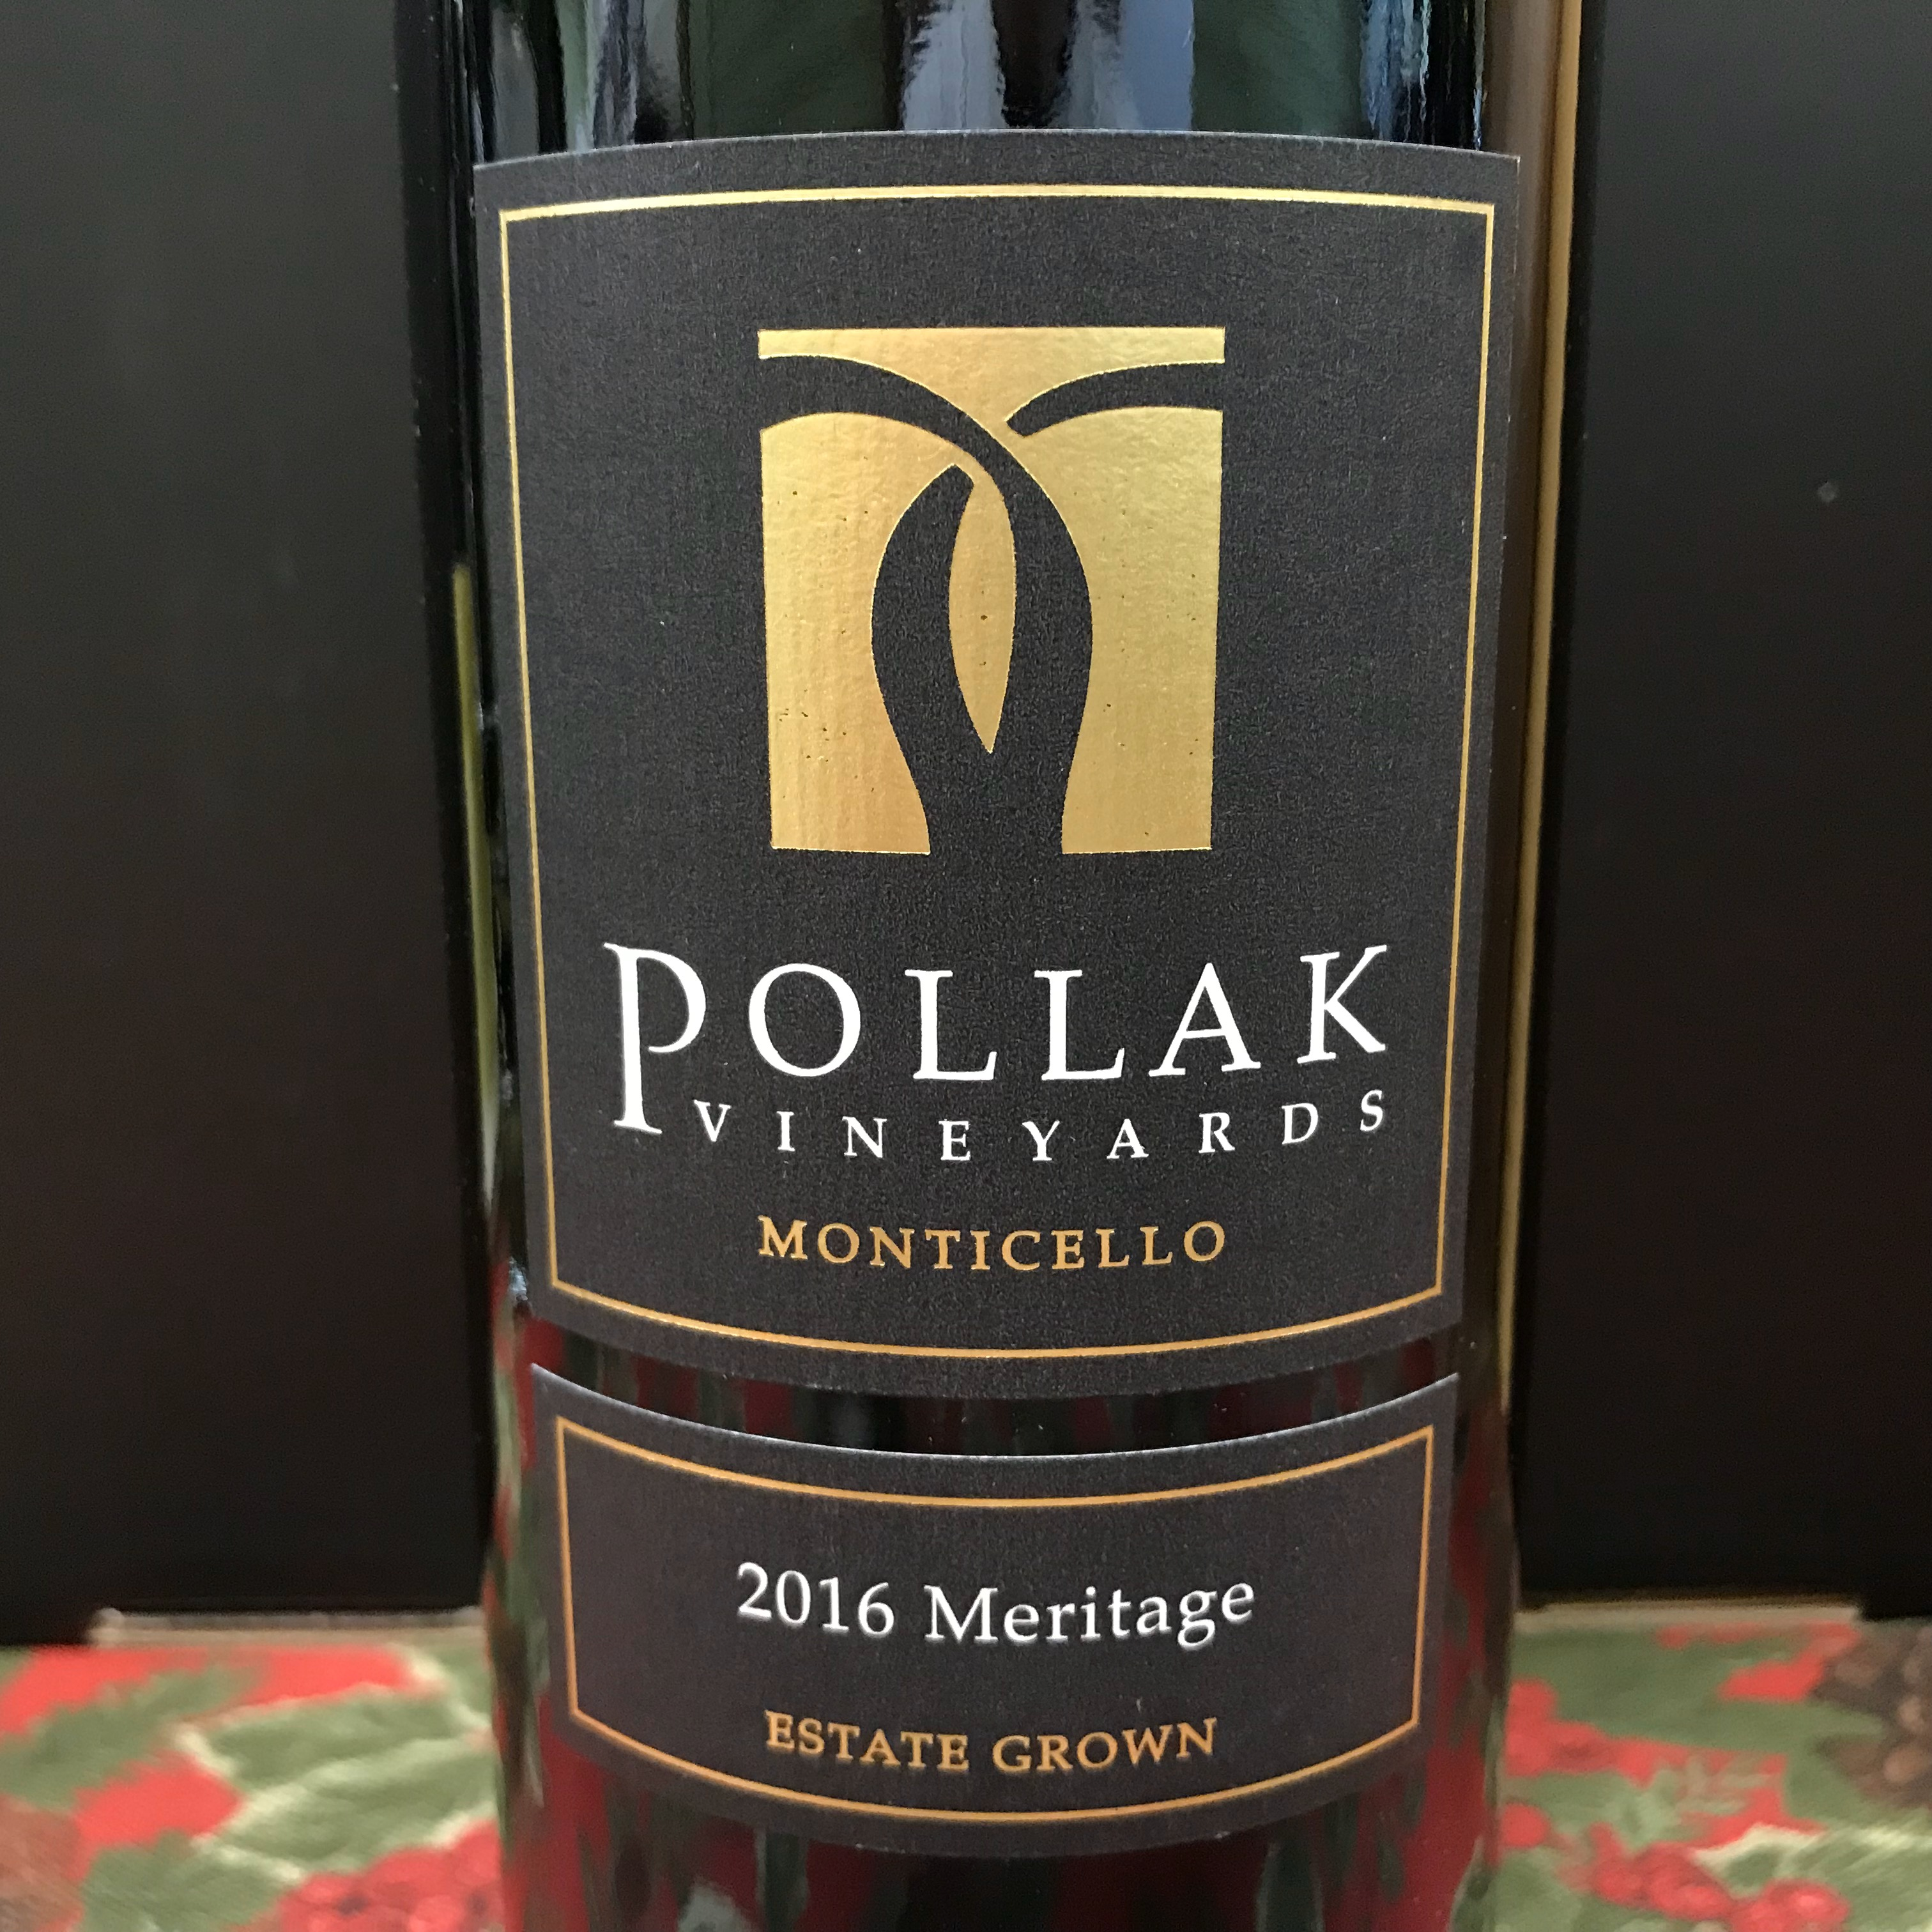 Pollak Vineyards Meritage Monticello Estate 2016